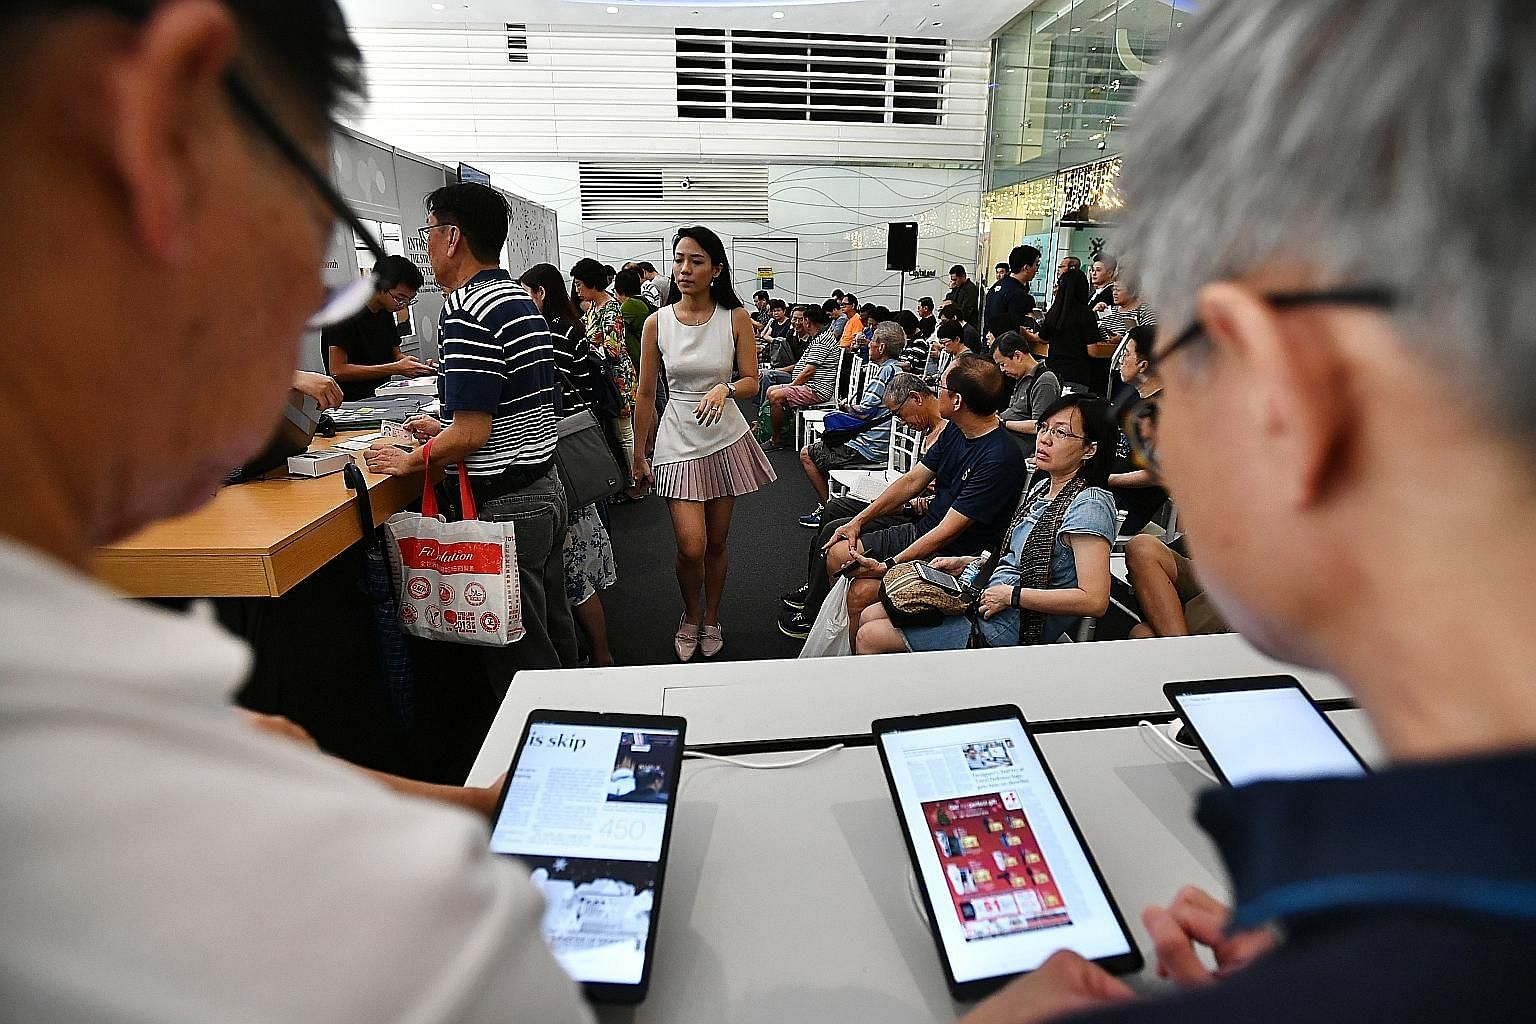 Subscribers of The Straits Times waiting to collect the news tablet last December. Readers have given the news tablet, which offers the convenience of reading traditional print papers in a digital format, positive reviews. The ST Tab app is pre-insta